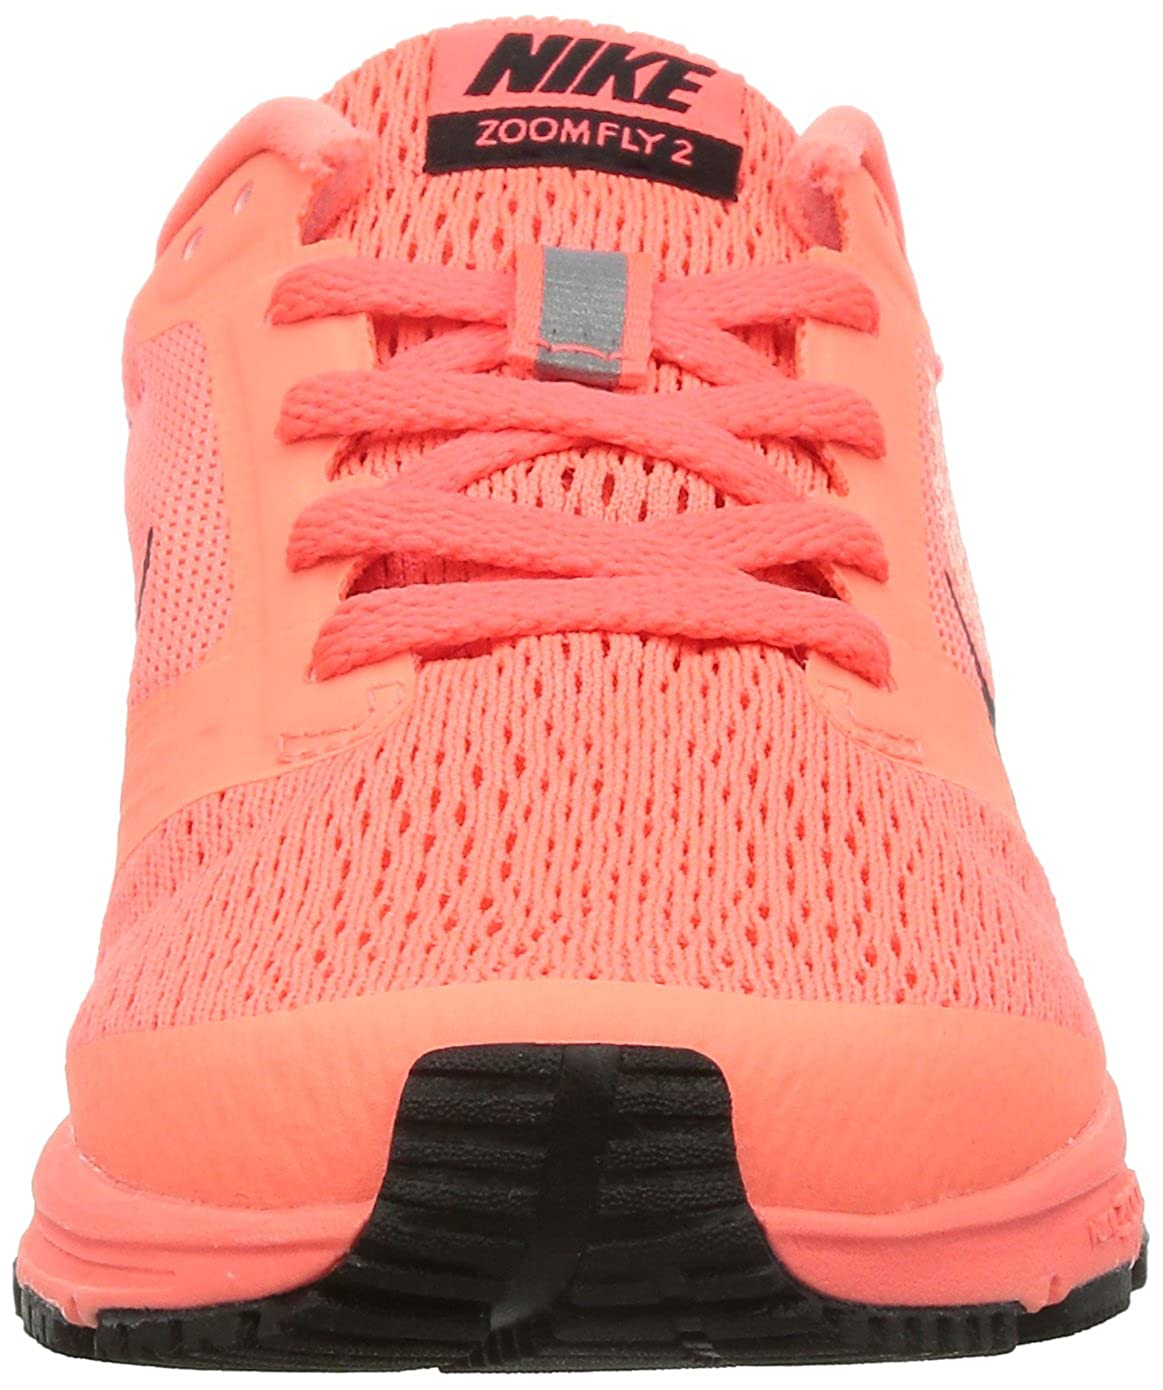 46687a8ee9d Nike - Air Zoom Fly 2 Women s Running Shoes (Orange) - EU 39 - US 8   Amazon.co.uk  Shoes   Bags